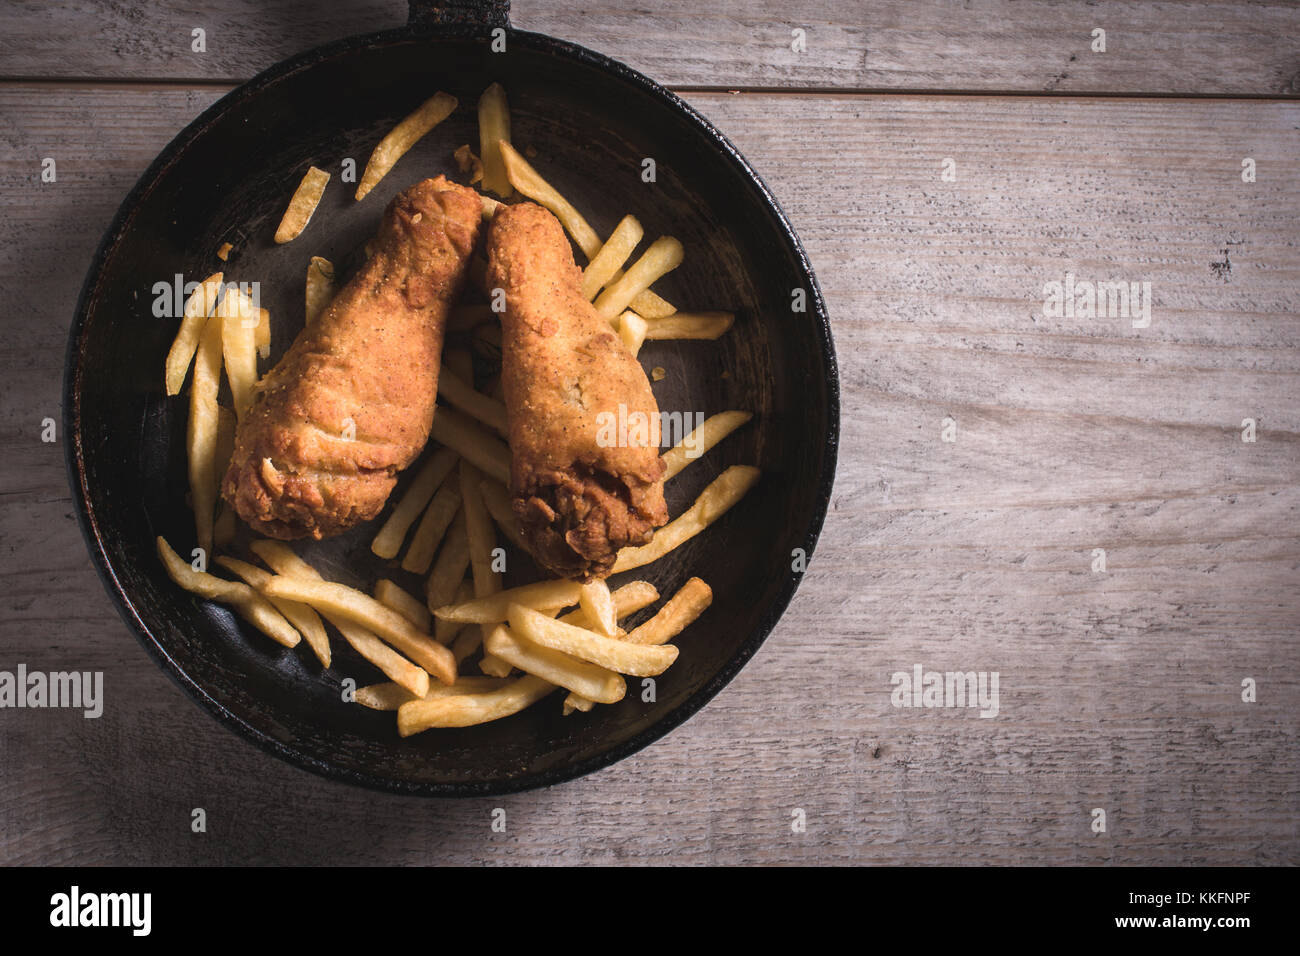 Fried chicken legs and french fries in the pan,blank space on the right side - Stock Image